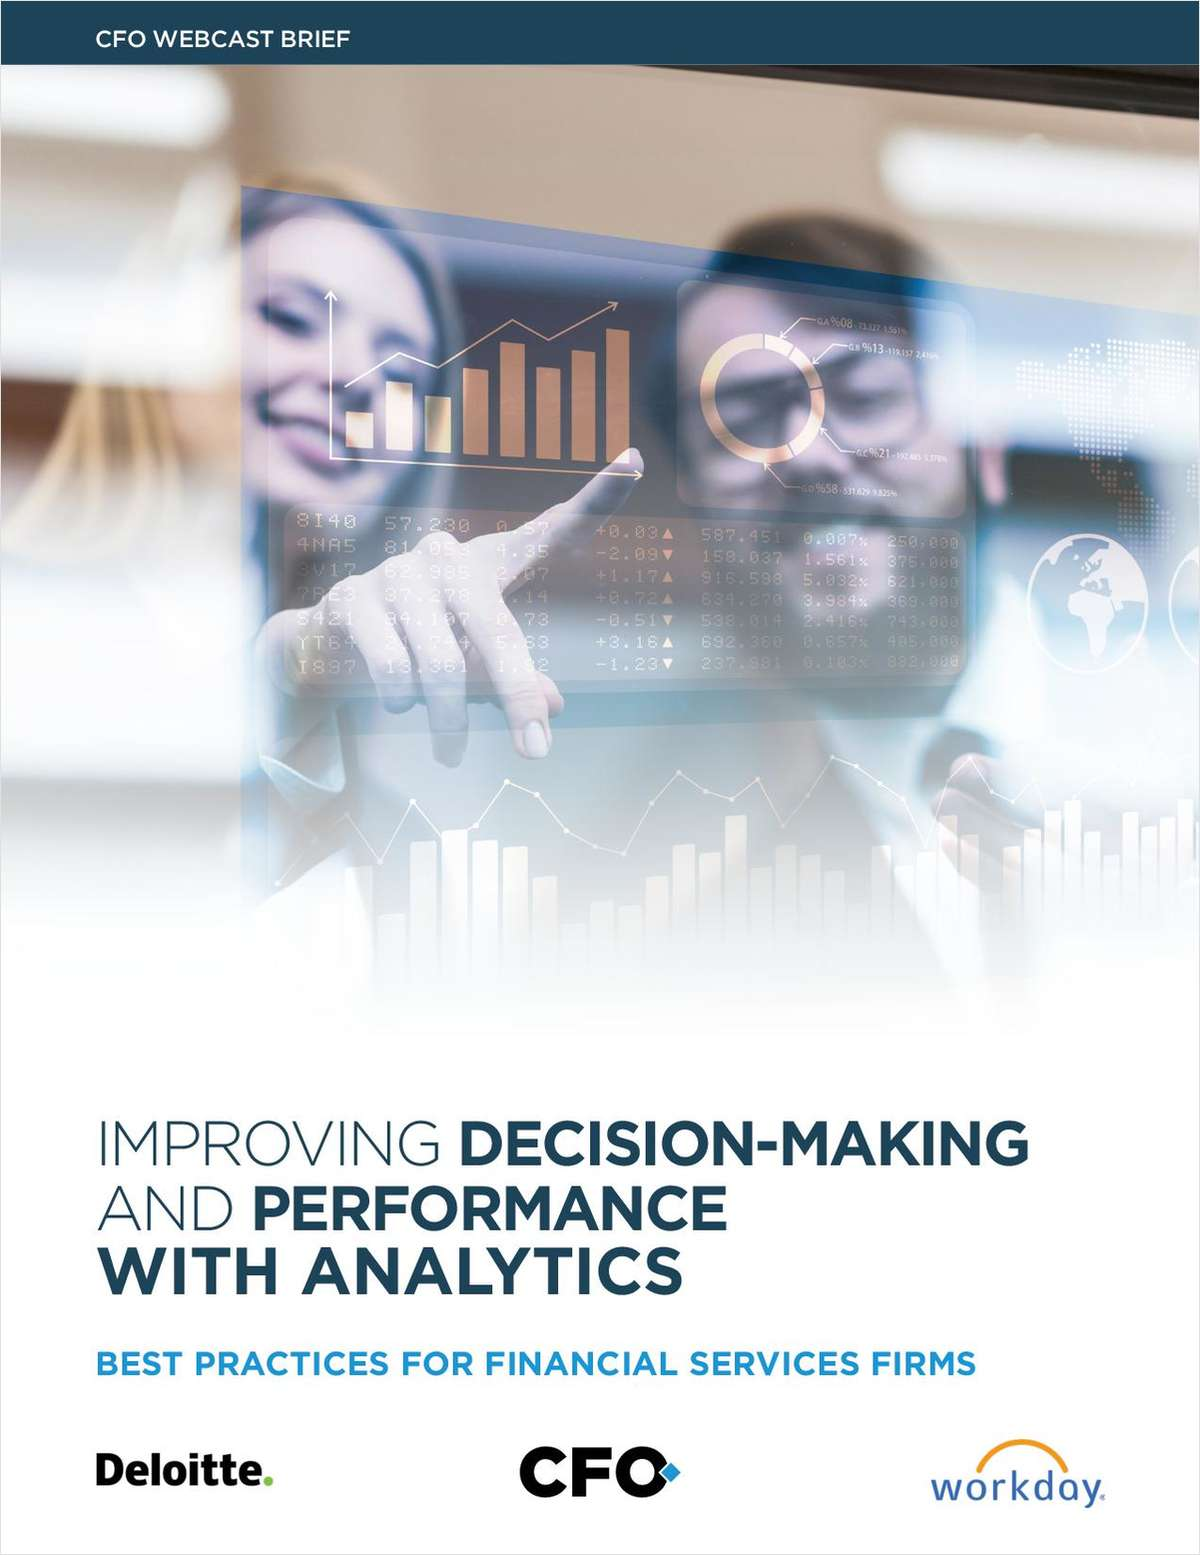 How to Improve Credit Union Decision-Making and Performance with Analytics